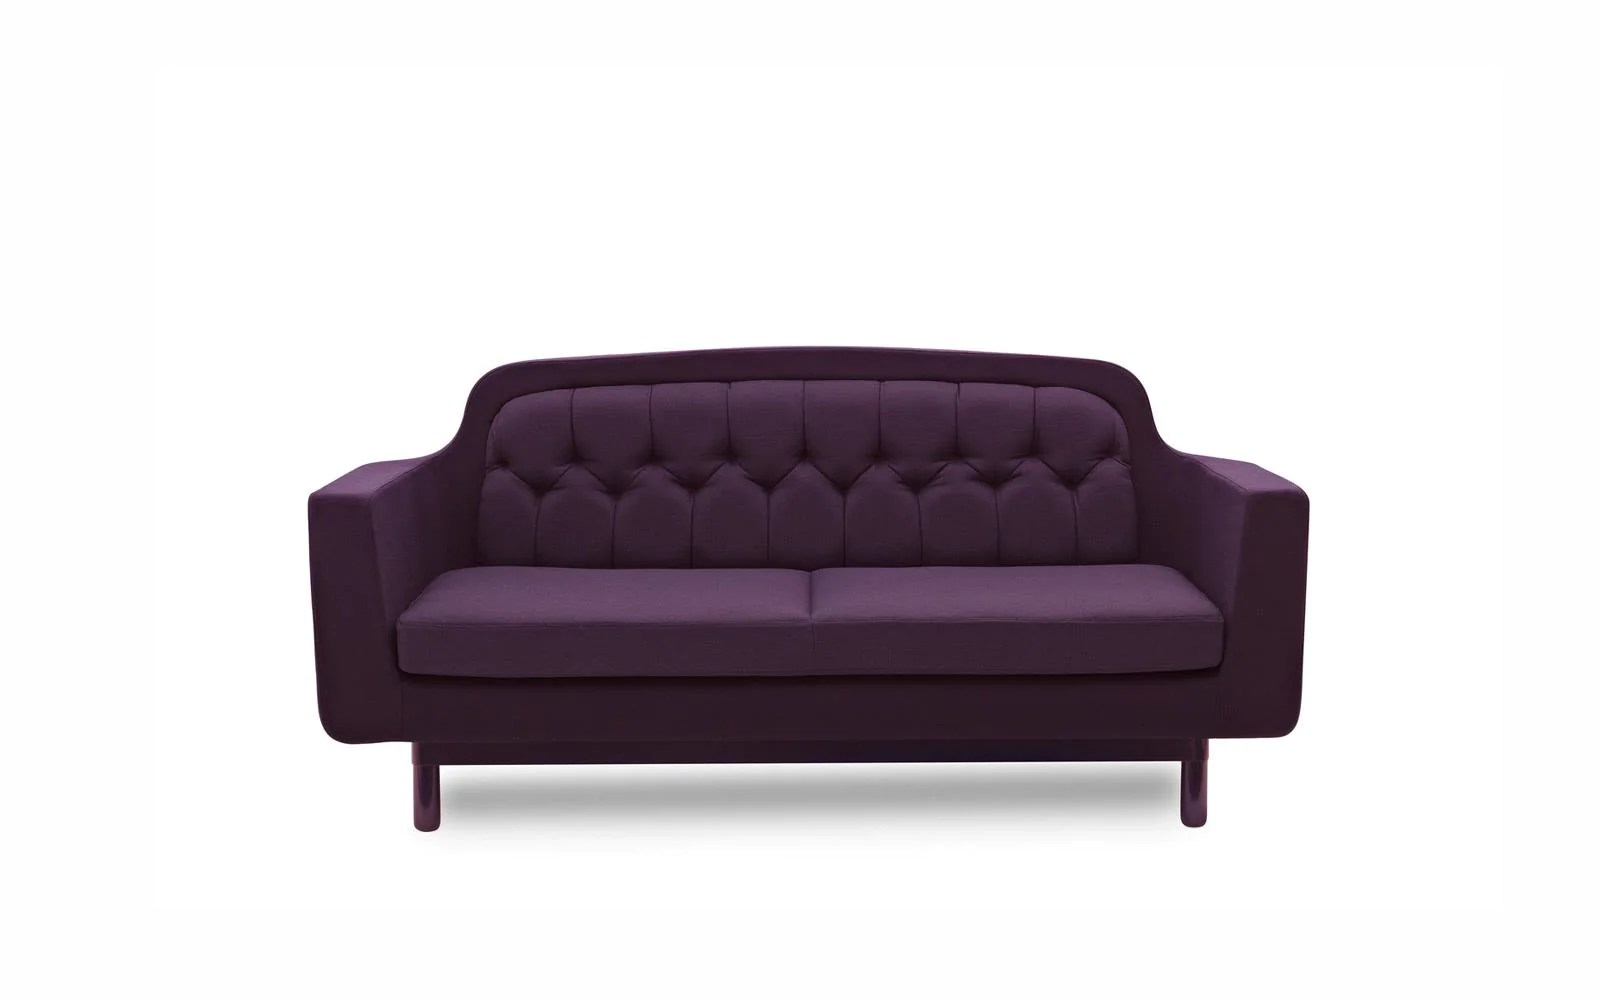 simplicity sofas nc room and board hess sofa review onkel 2 seater